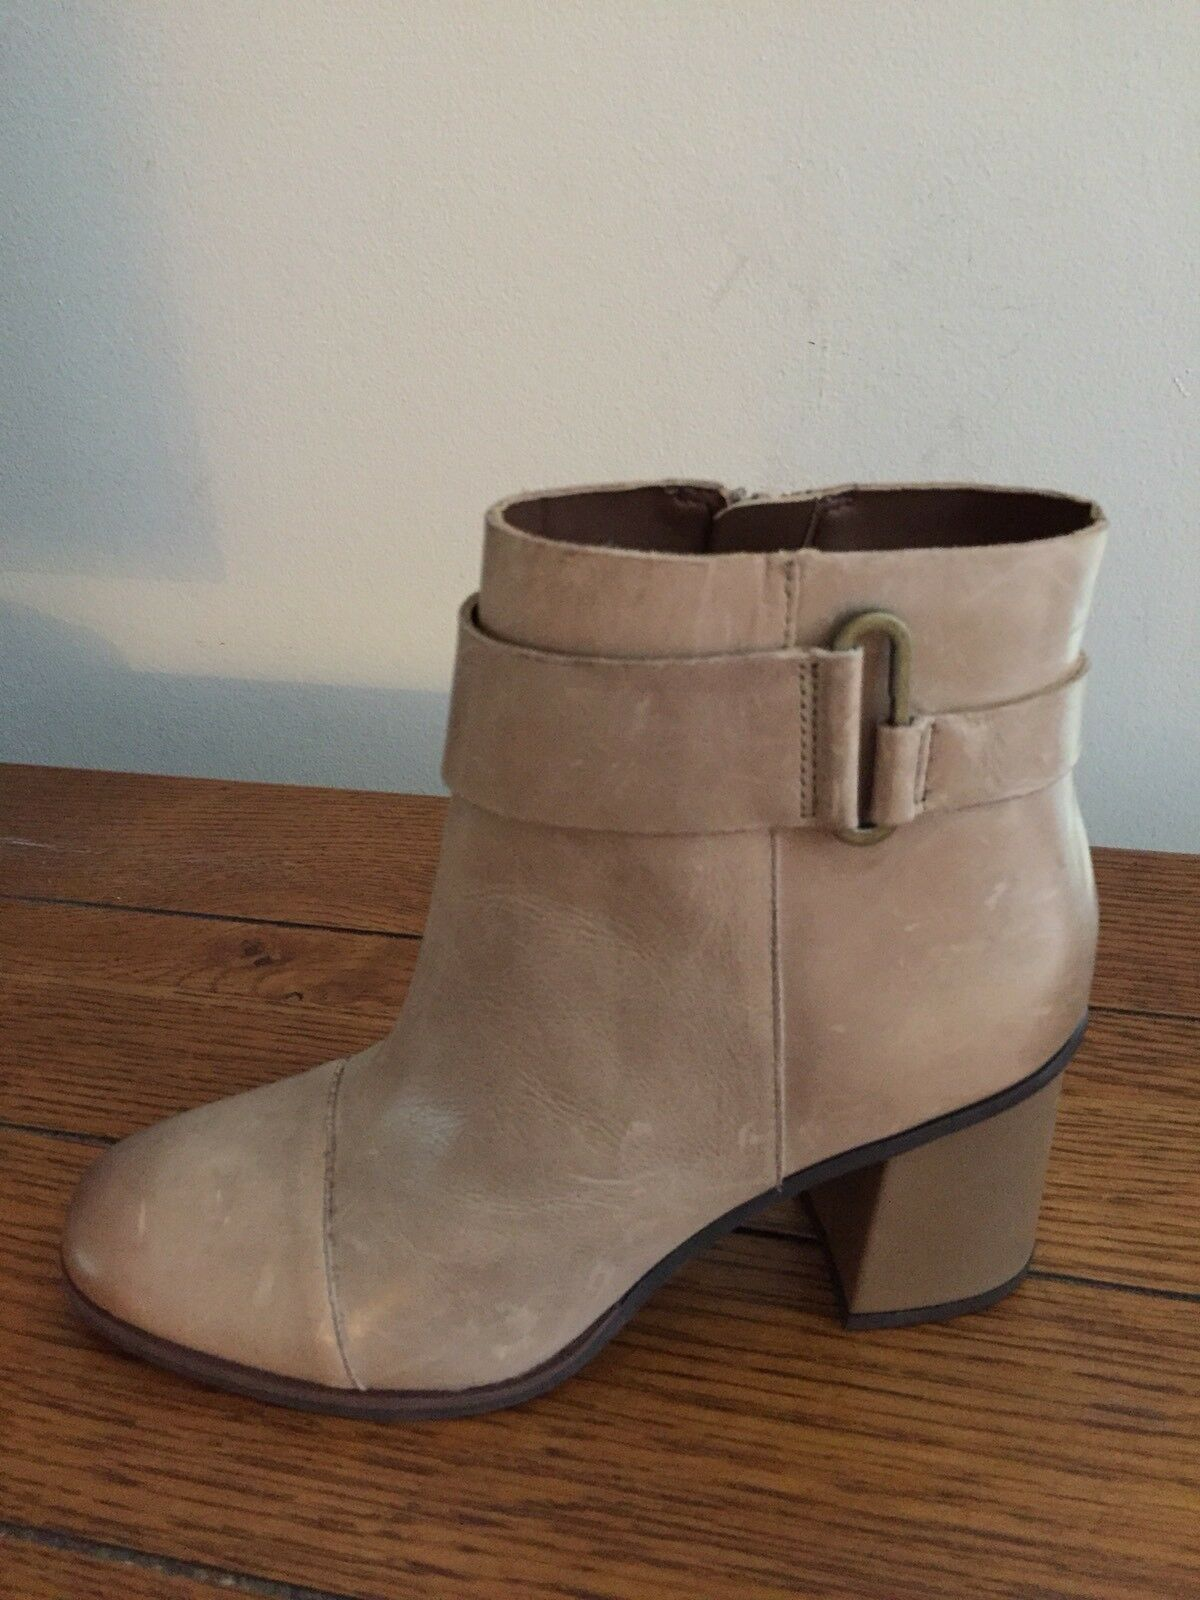 NEW Korks Korks Korks By Kork-Ease Decola Size 7.5 Taupe Brown Leather Cap Toe Ankle Boots 62cdcf